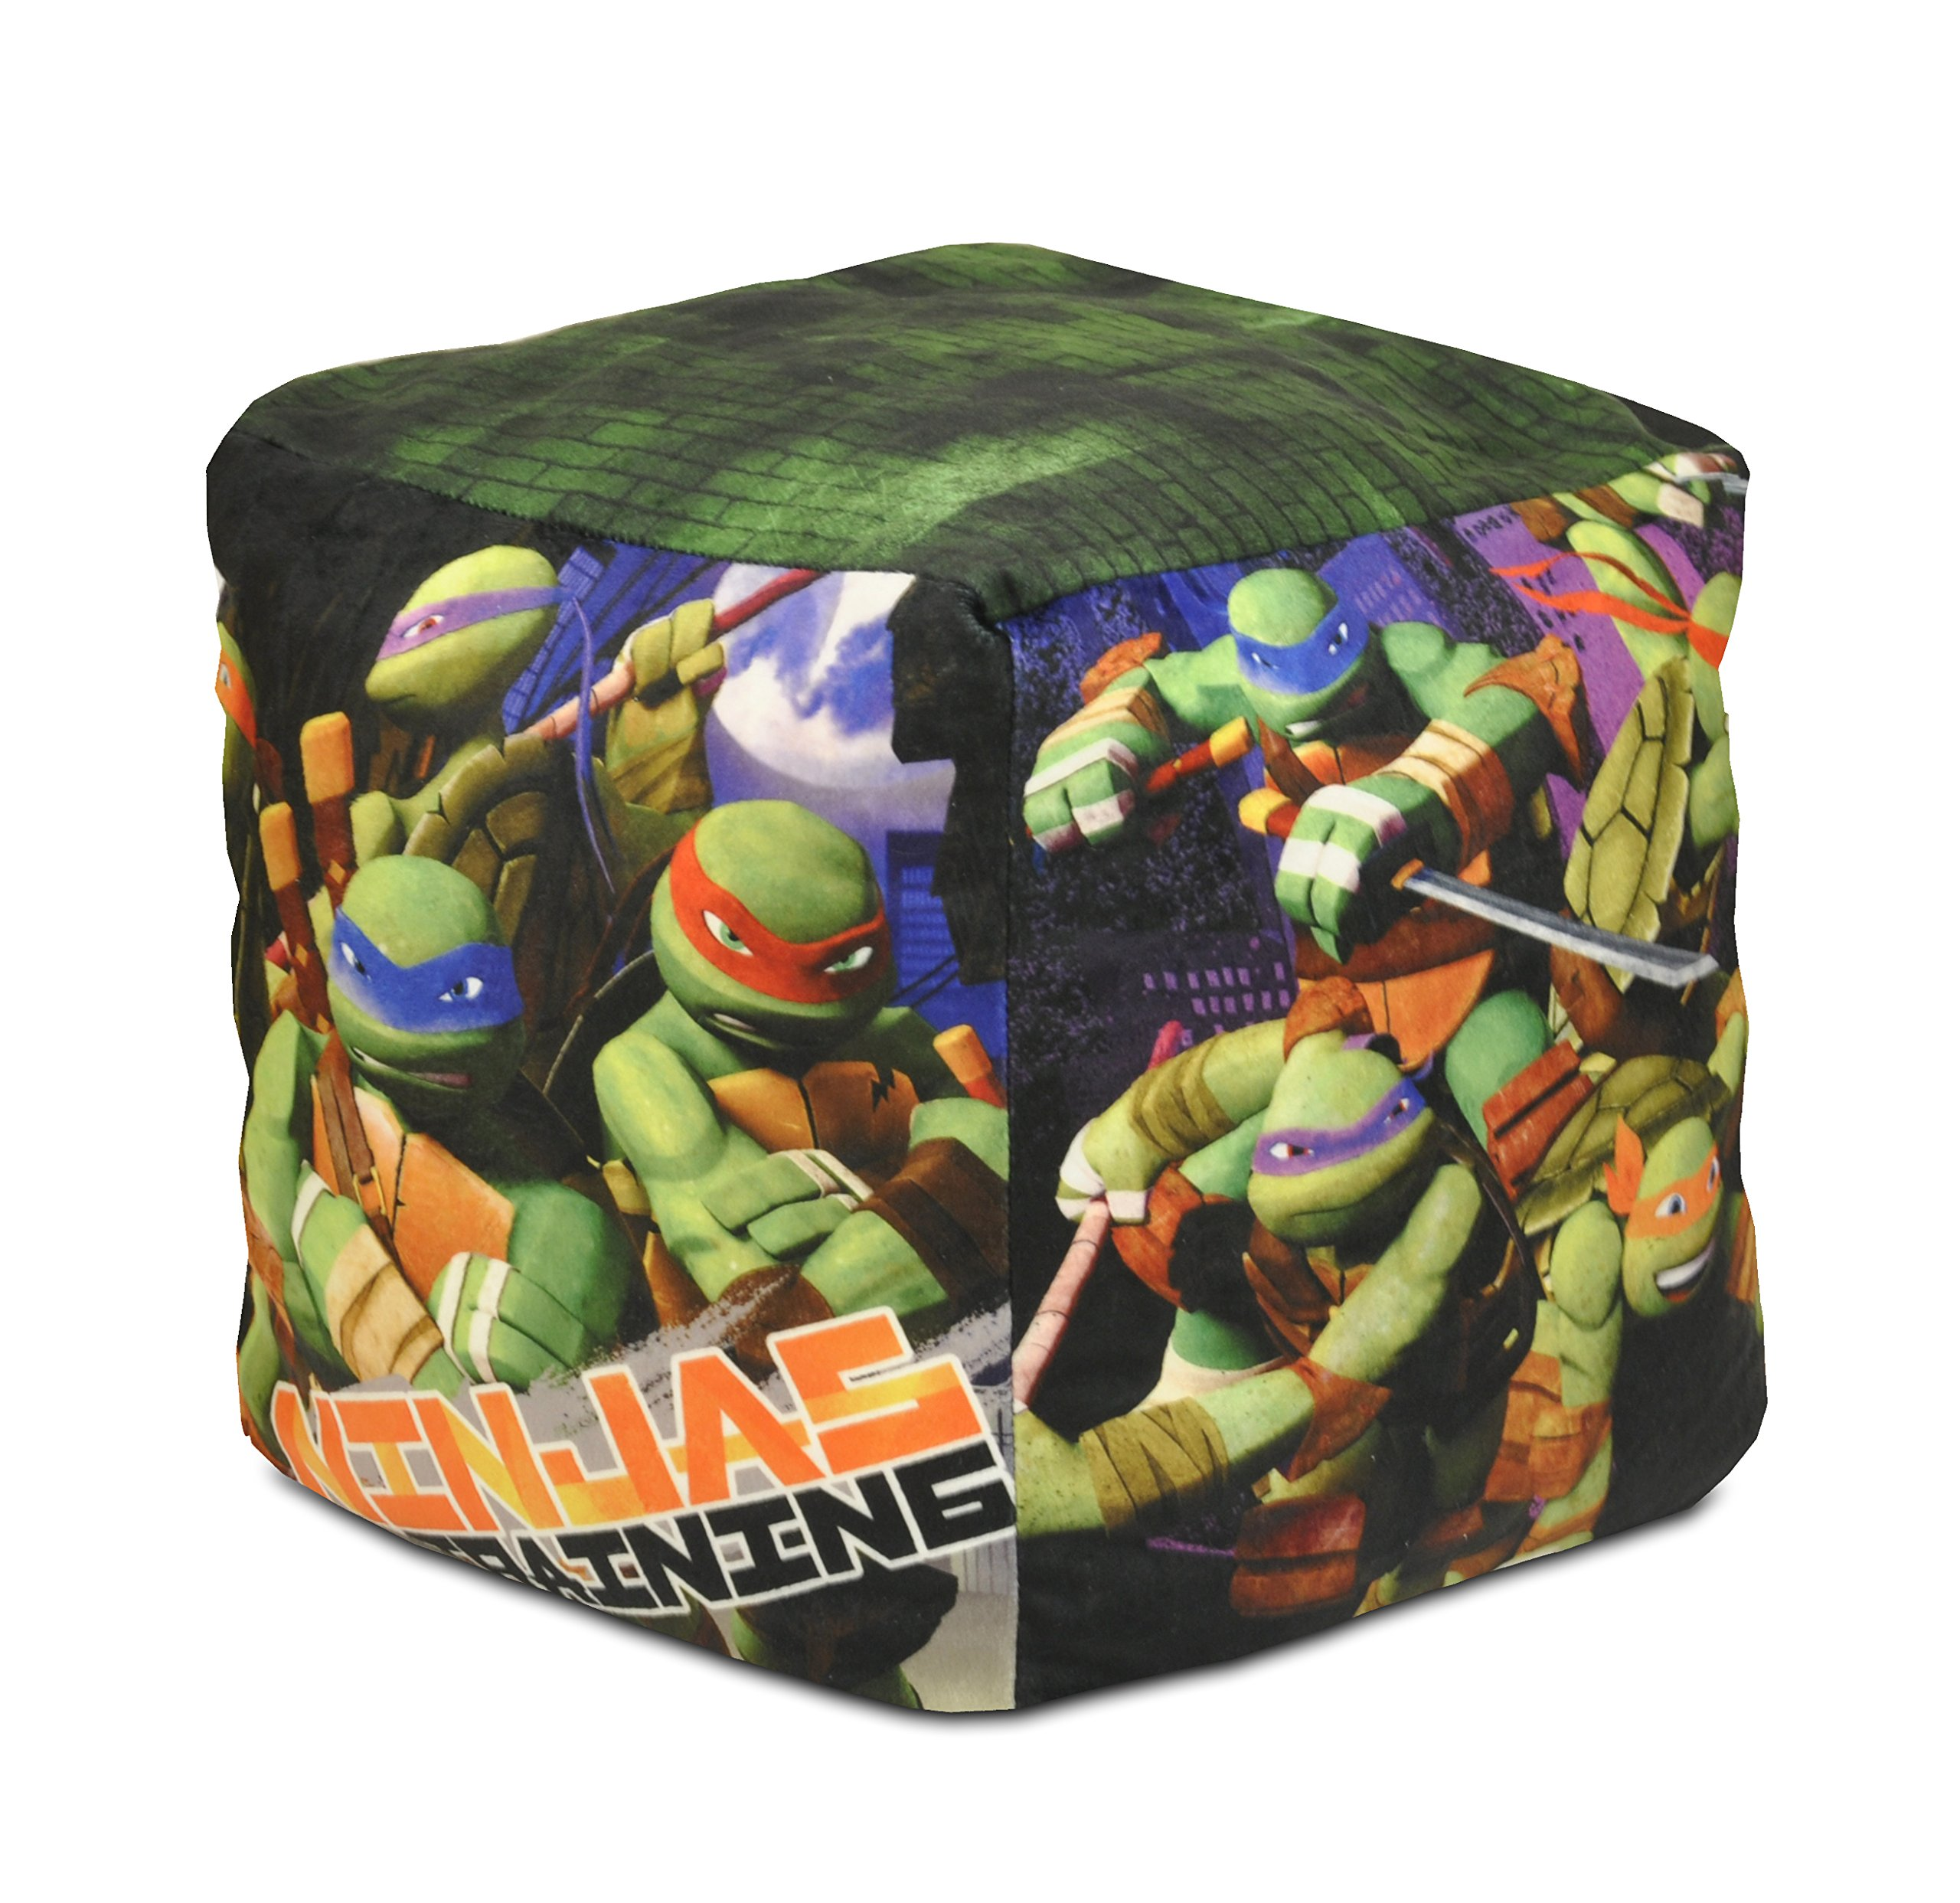 Nickelodeon Teenage Mutant Ninja Turtles Square Pouf by Nickelodeon